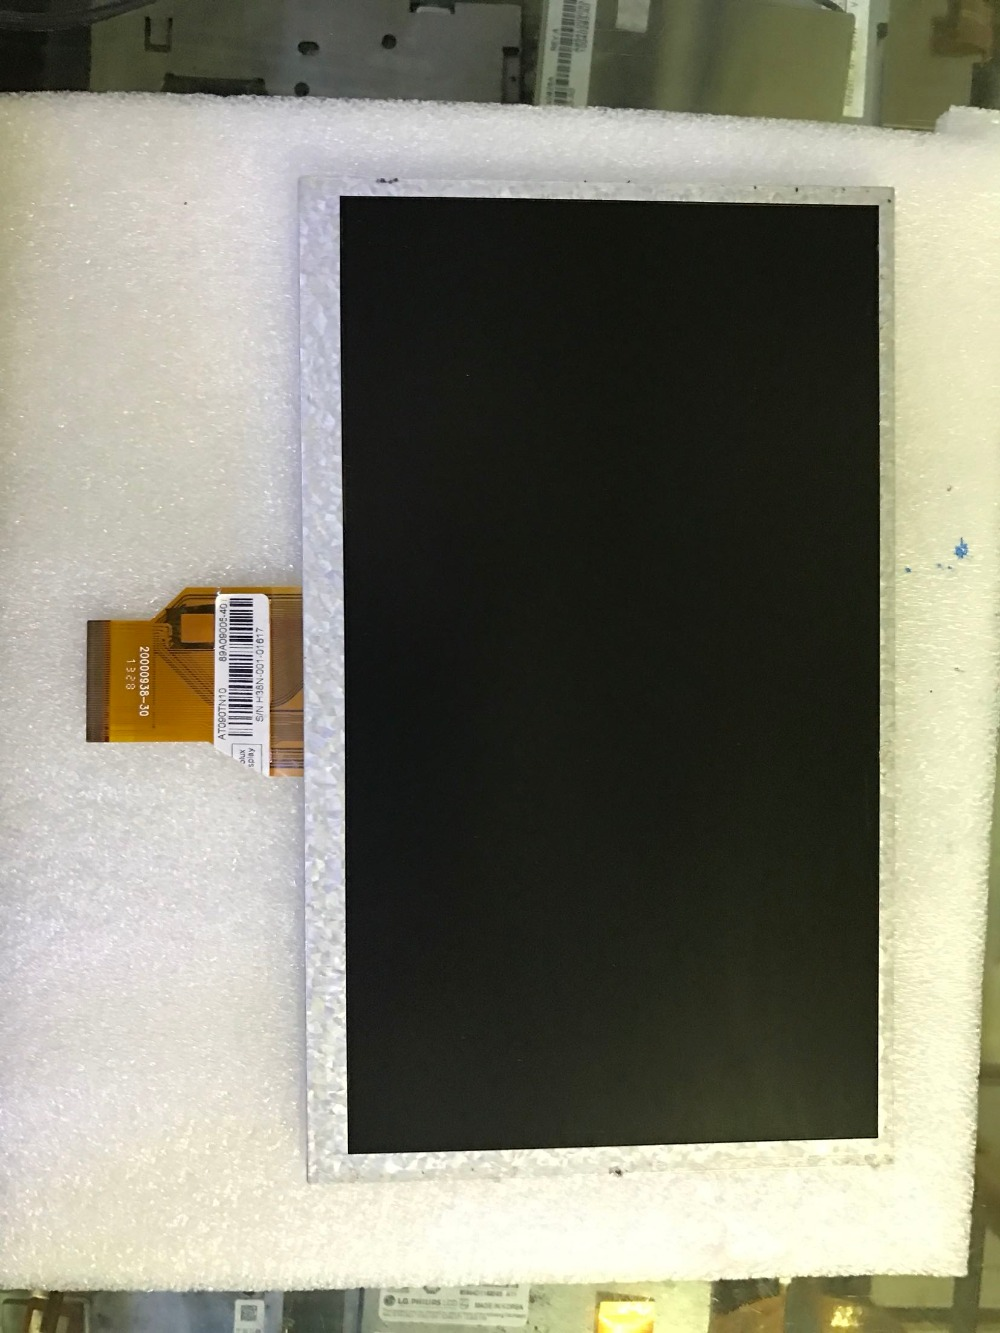 free shipping Original Innolux 9-inch LCD screen of the original model: AT090TN10 20000938-30 20000938-00 3mm прицел gamo 3 9х40 llwr ve39x40wrv w1pmv